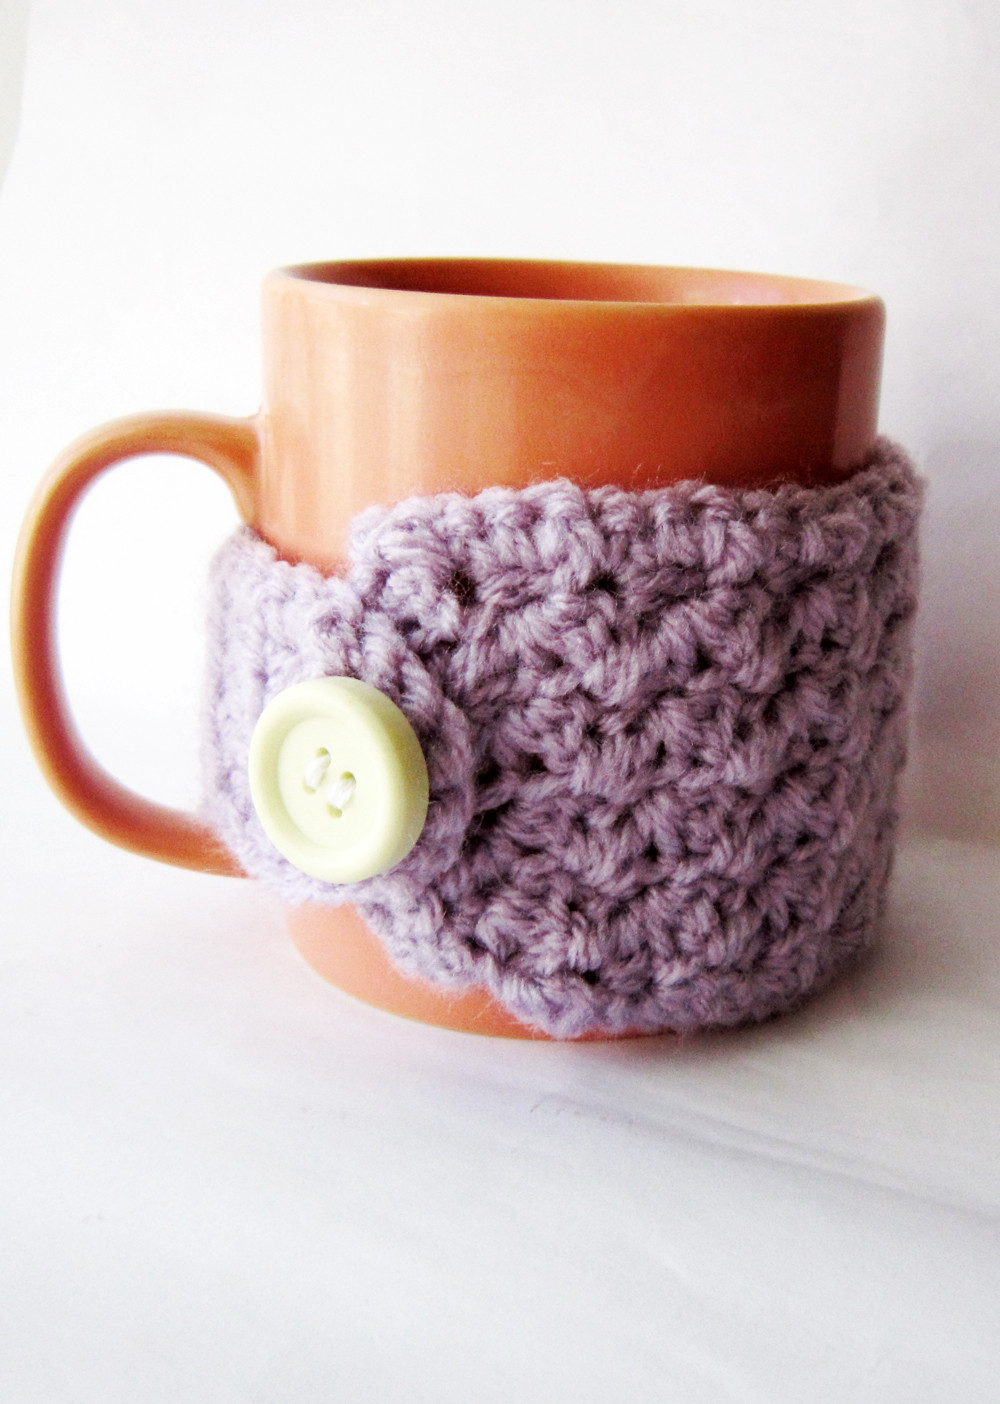 Crochet Coffee Cup Cozy Inspirational Easy Crochet Mug Cozy Free Pattern Akamatra Of Crochet Coffee Cup Cozy Elegant Sunny Stitching Pinned It & Did It Mug Cozy Crochet